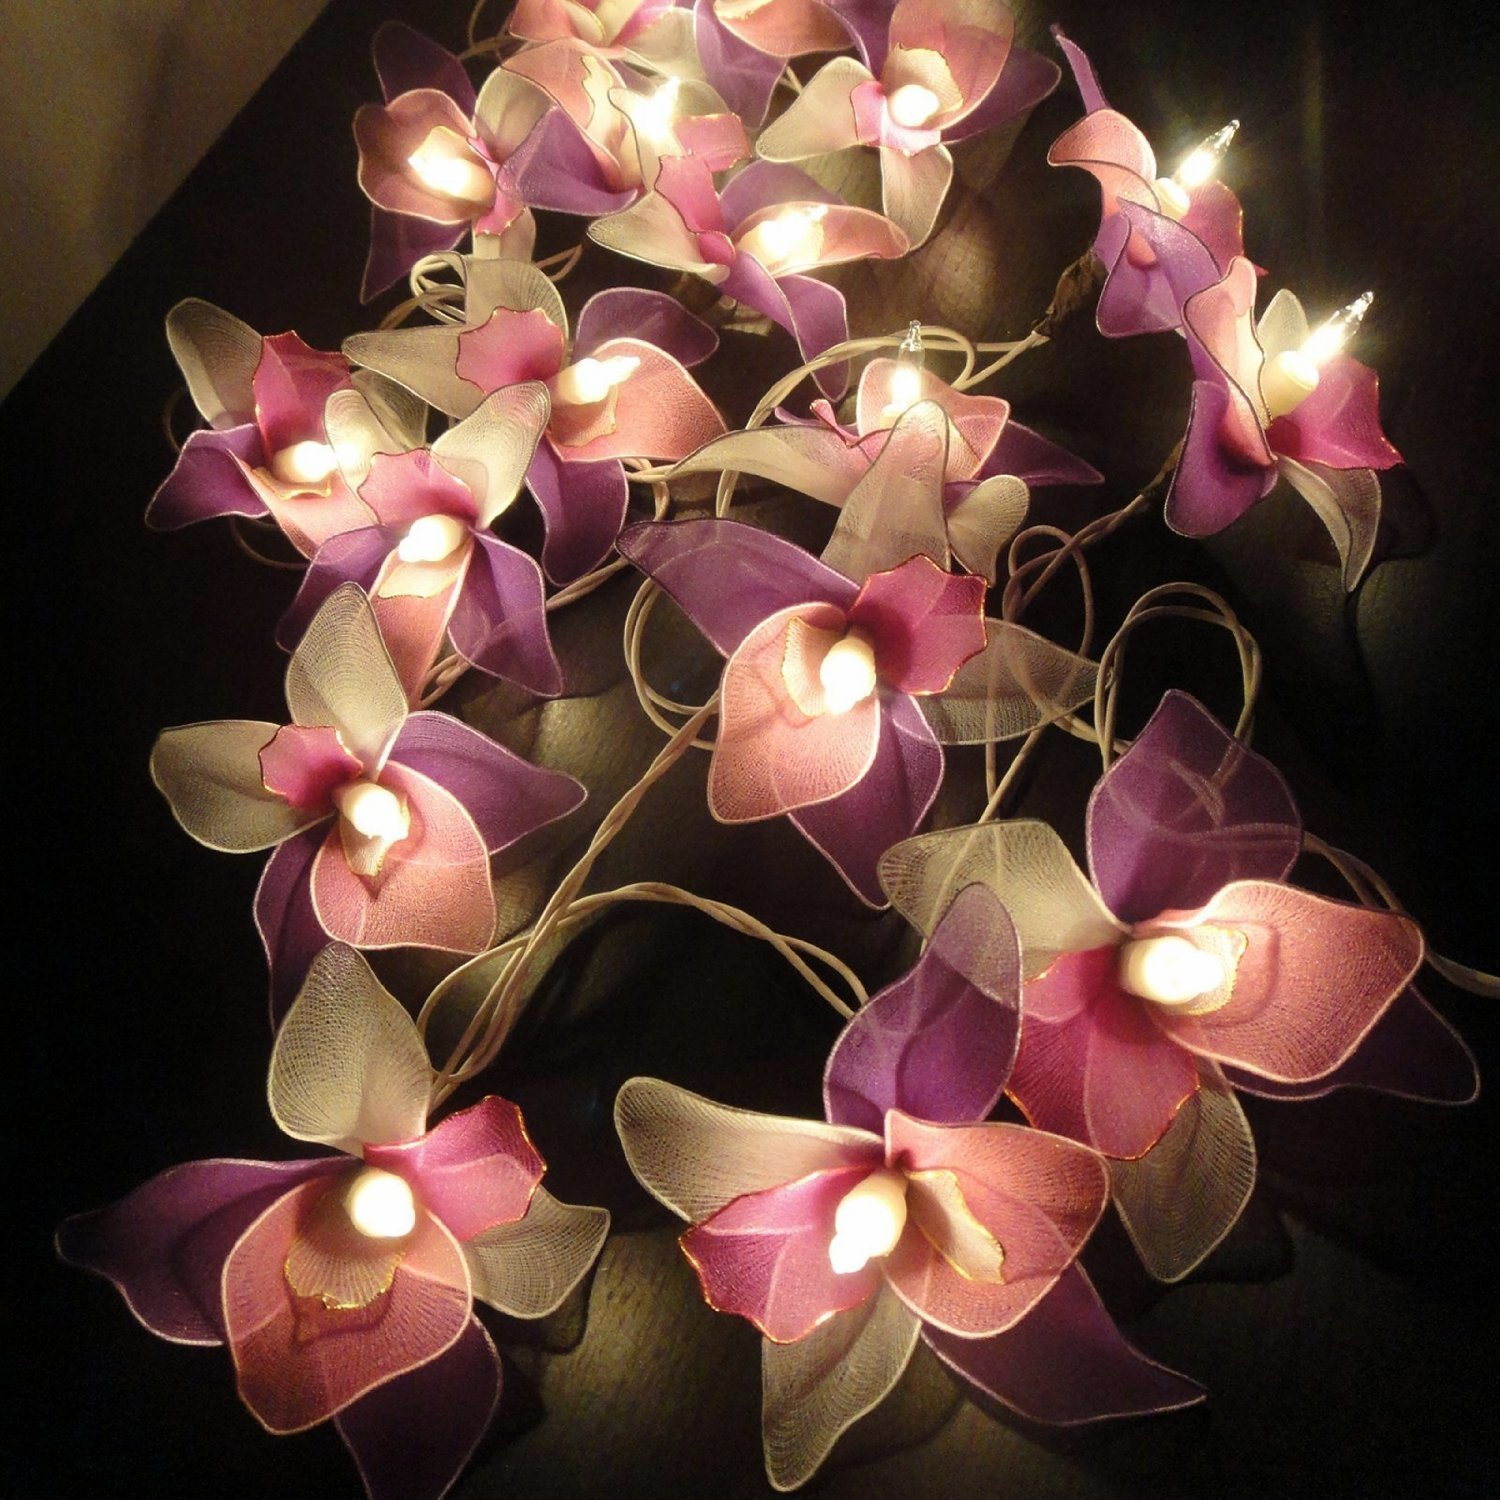 Amazon Thai Vintage Handmade 25 Lights White Pink Purple